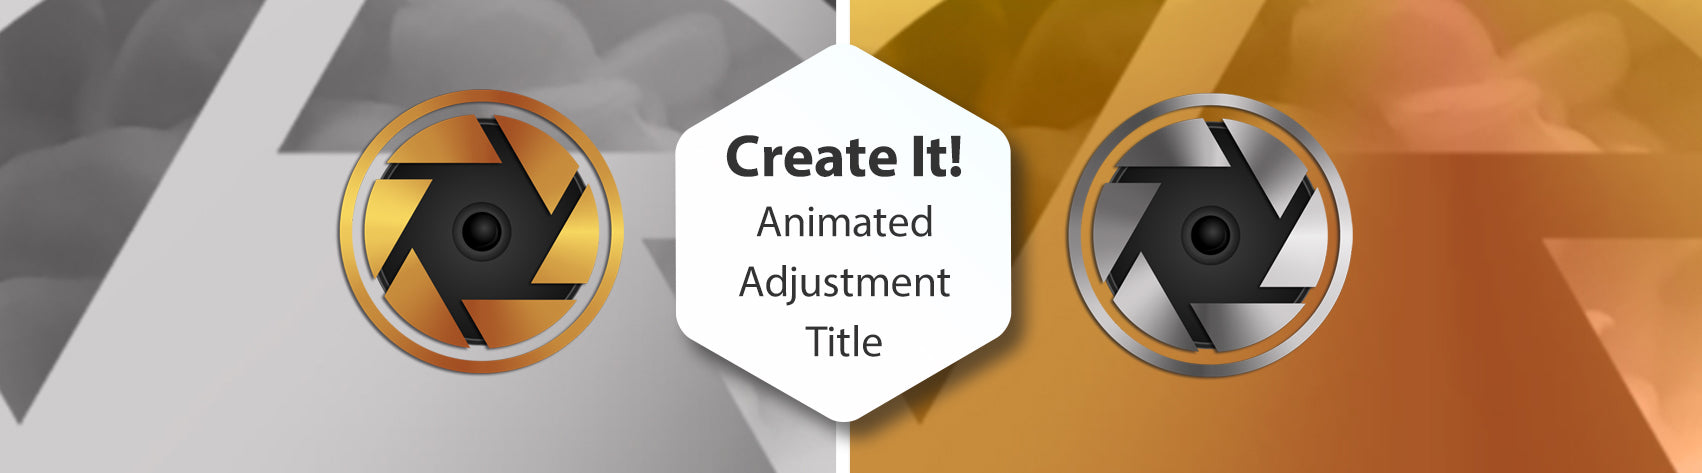 Create It! Animated Adjustment Title